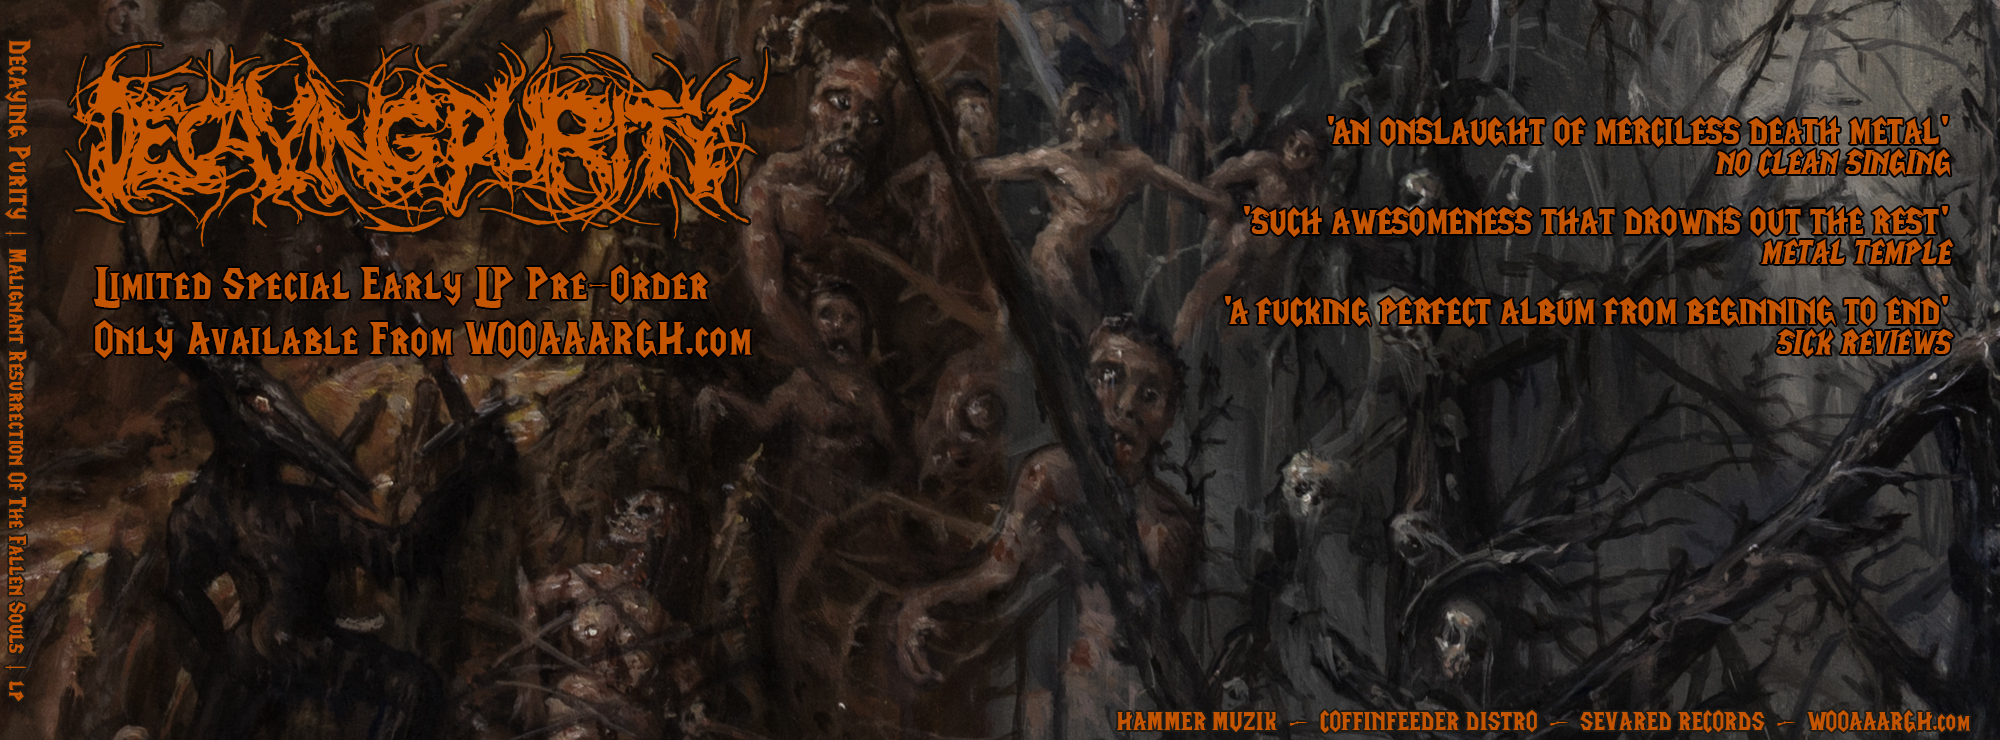 Decaying_Purity_banner_LP_1.jpg